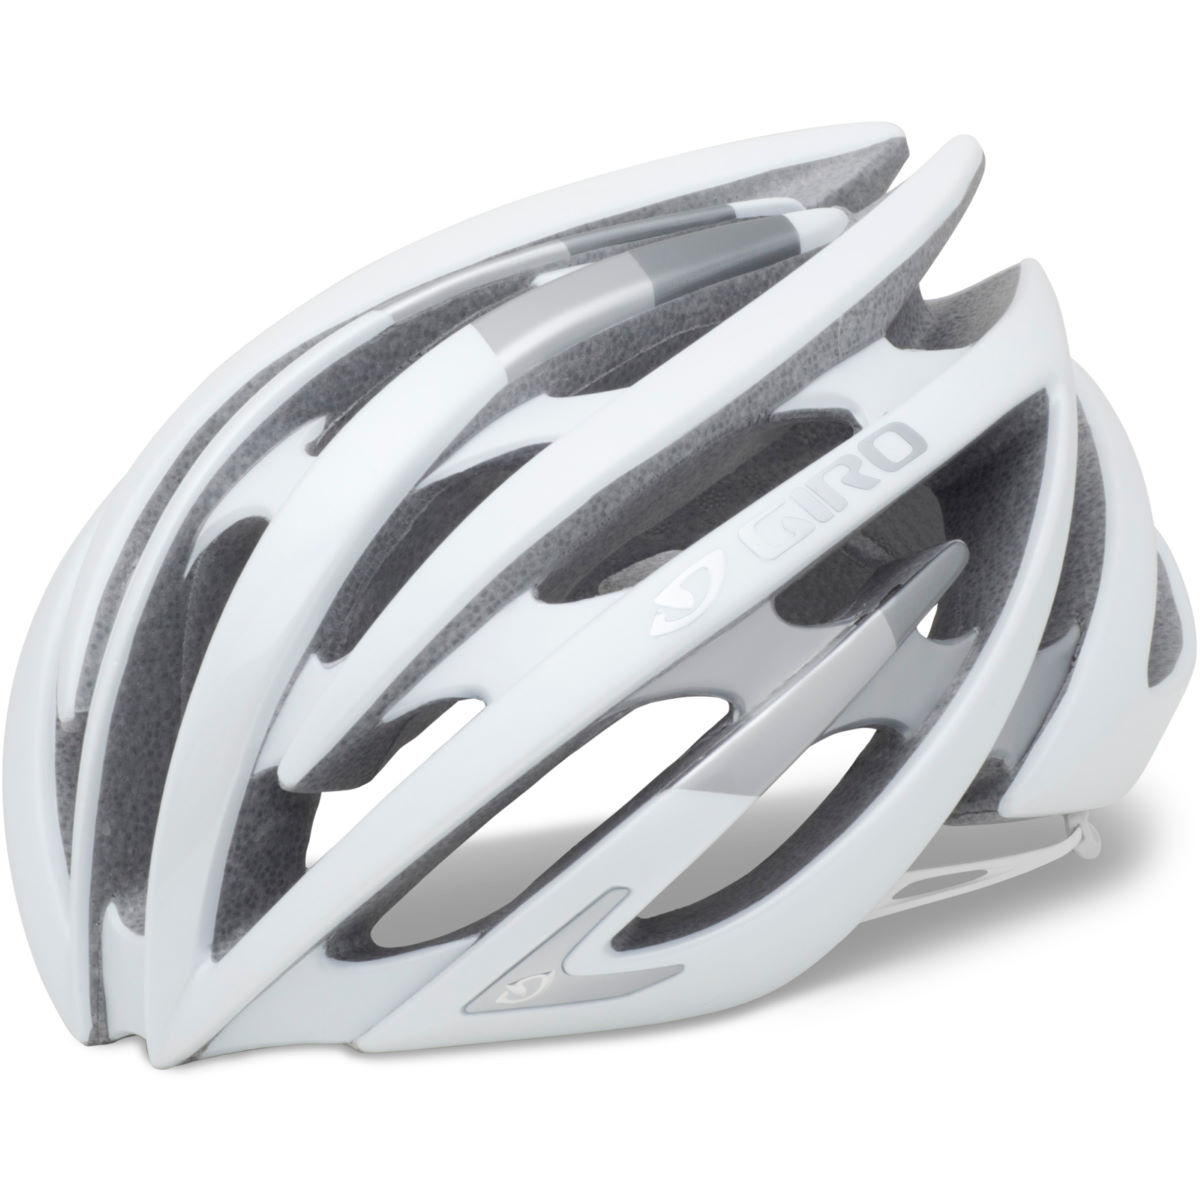 Image of Casque de route Giro Aeon - Medium 55-59cm Matt White/Silver 19